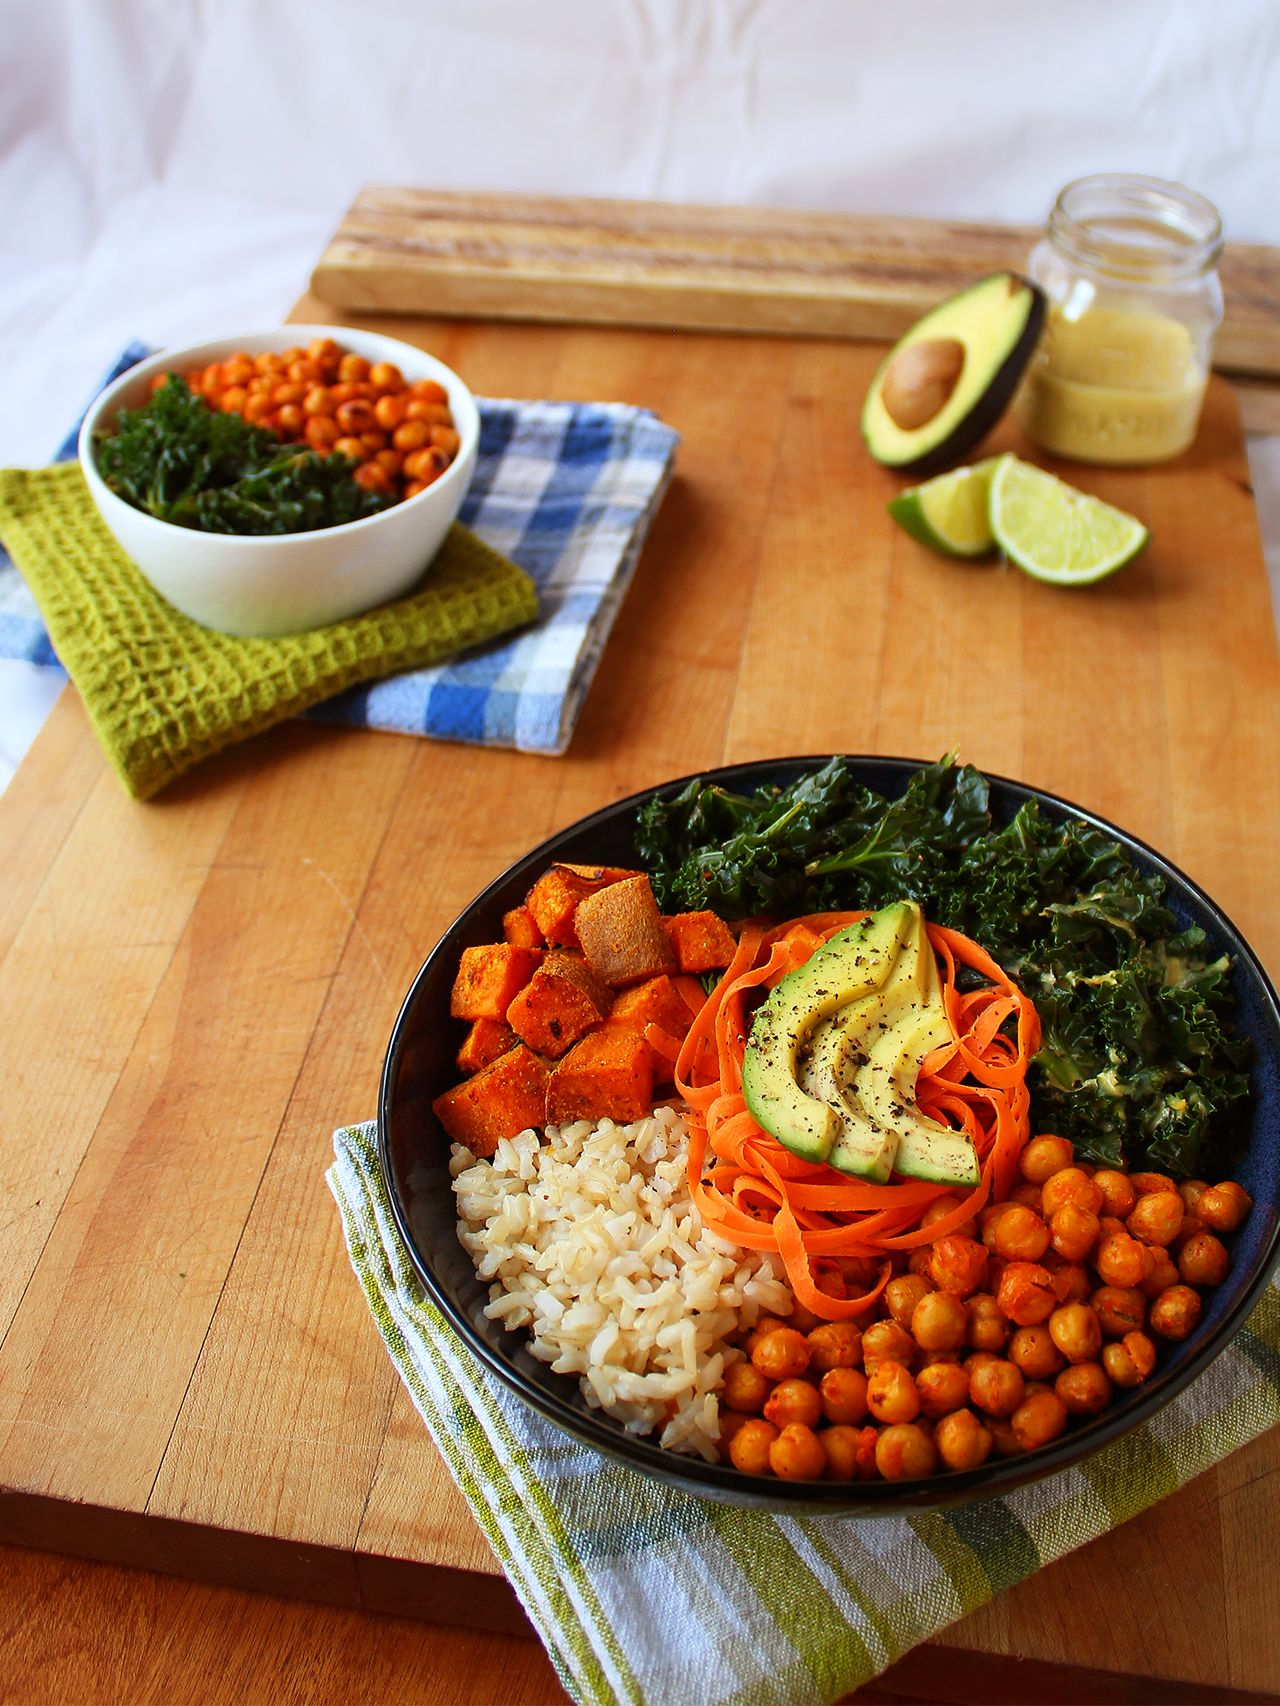 Vegan lunch bowl steamed brown rice curry roasted sweet potatoes vegan lunch bowl steamed brown rice curry roasted sweet potatoes sriracha roasted chickpeas chili lime kale carrot ribbons sliced avocado with lime forumfinder Image collections